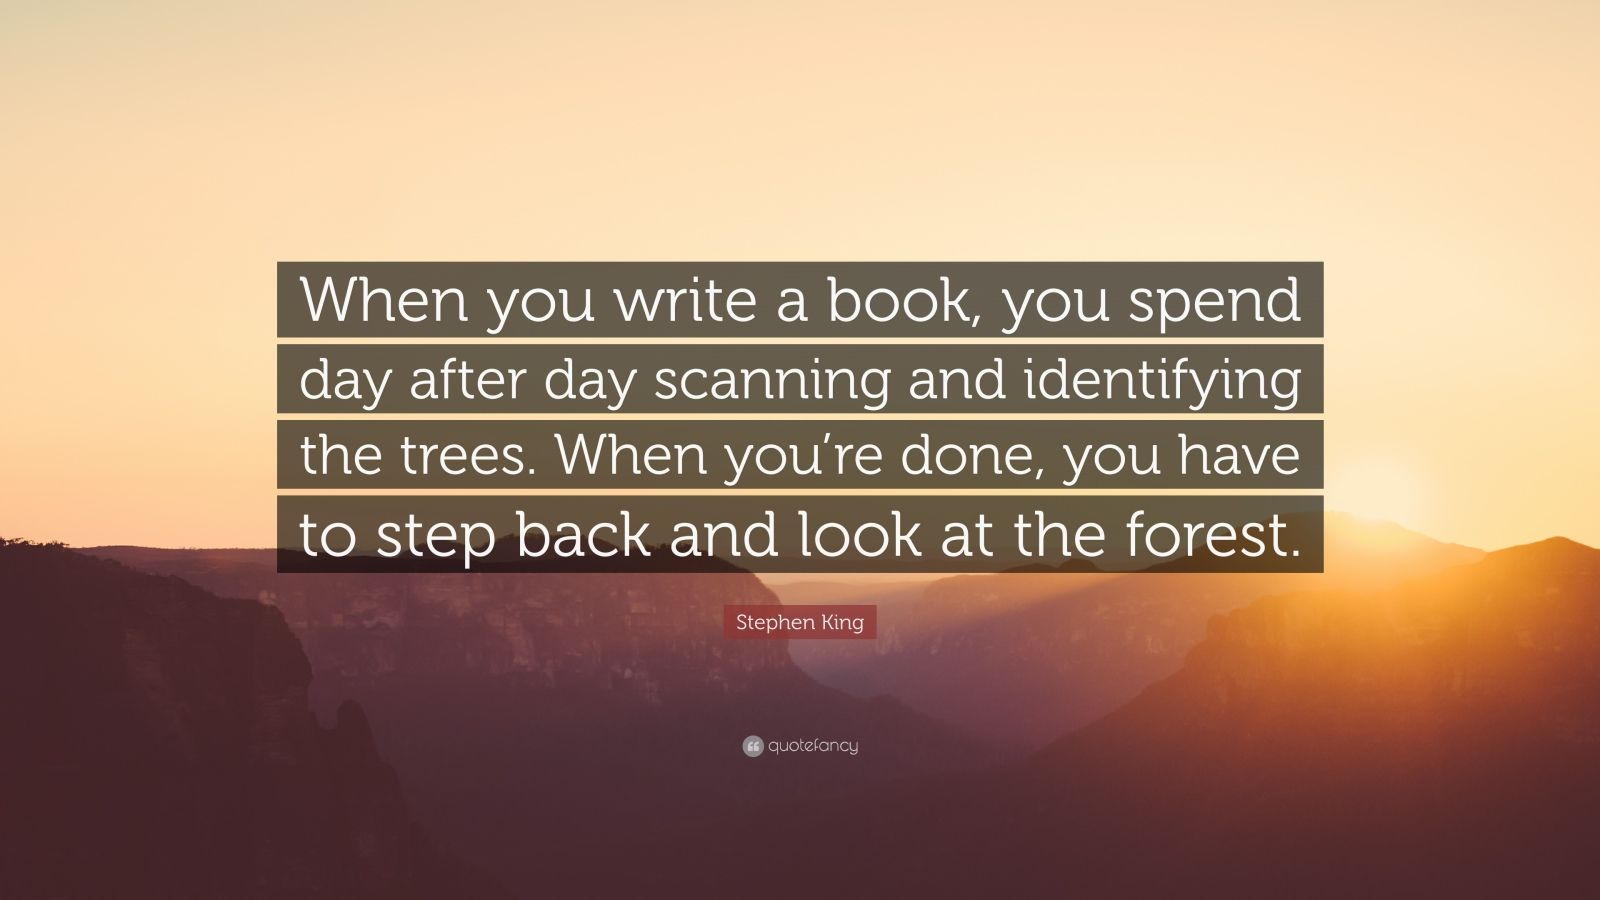 """Stephen King Quote: """"When you write a book, you spend day after day scanning and identifying the trees. When you're done, you have to step back and look at the forest."""""""